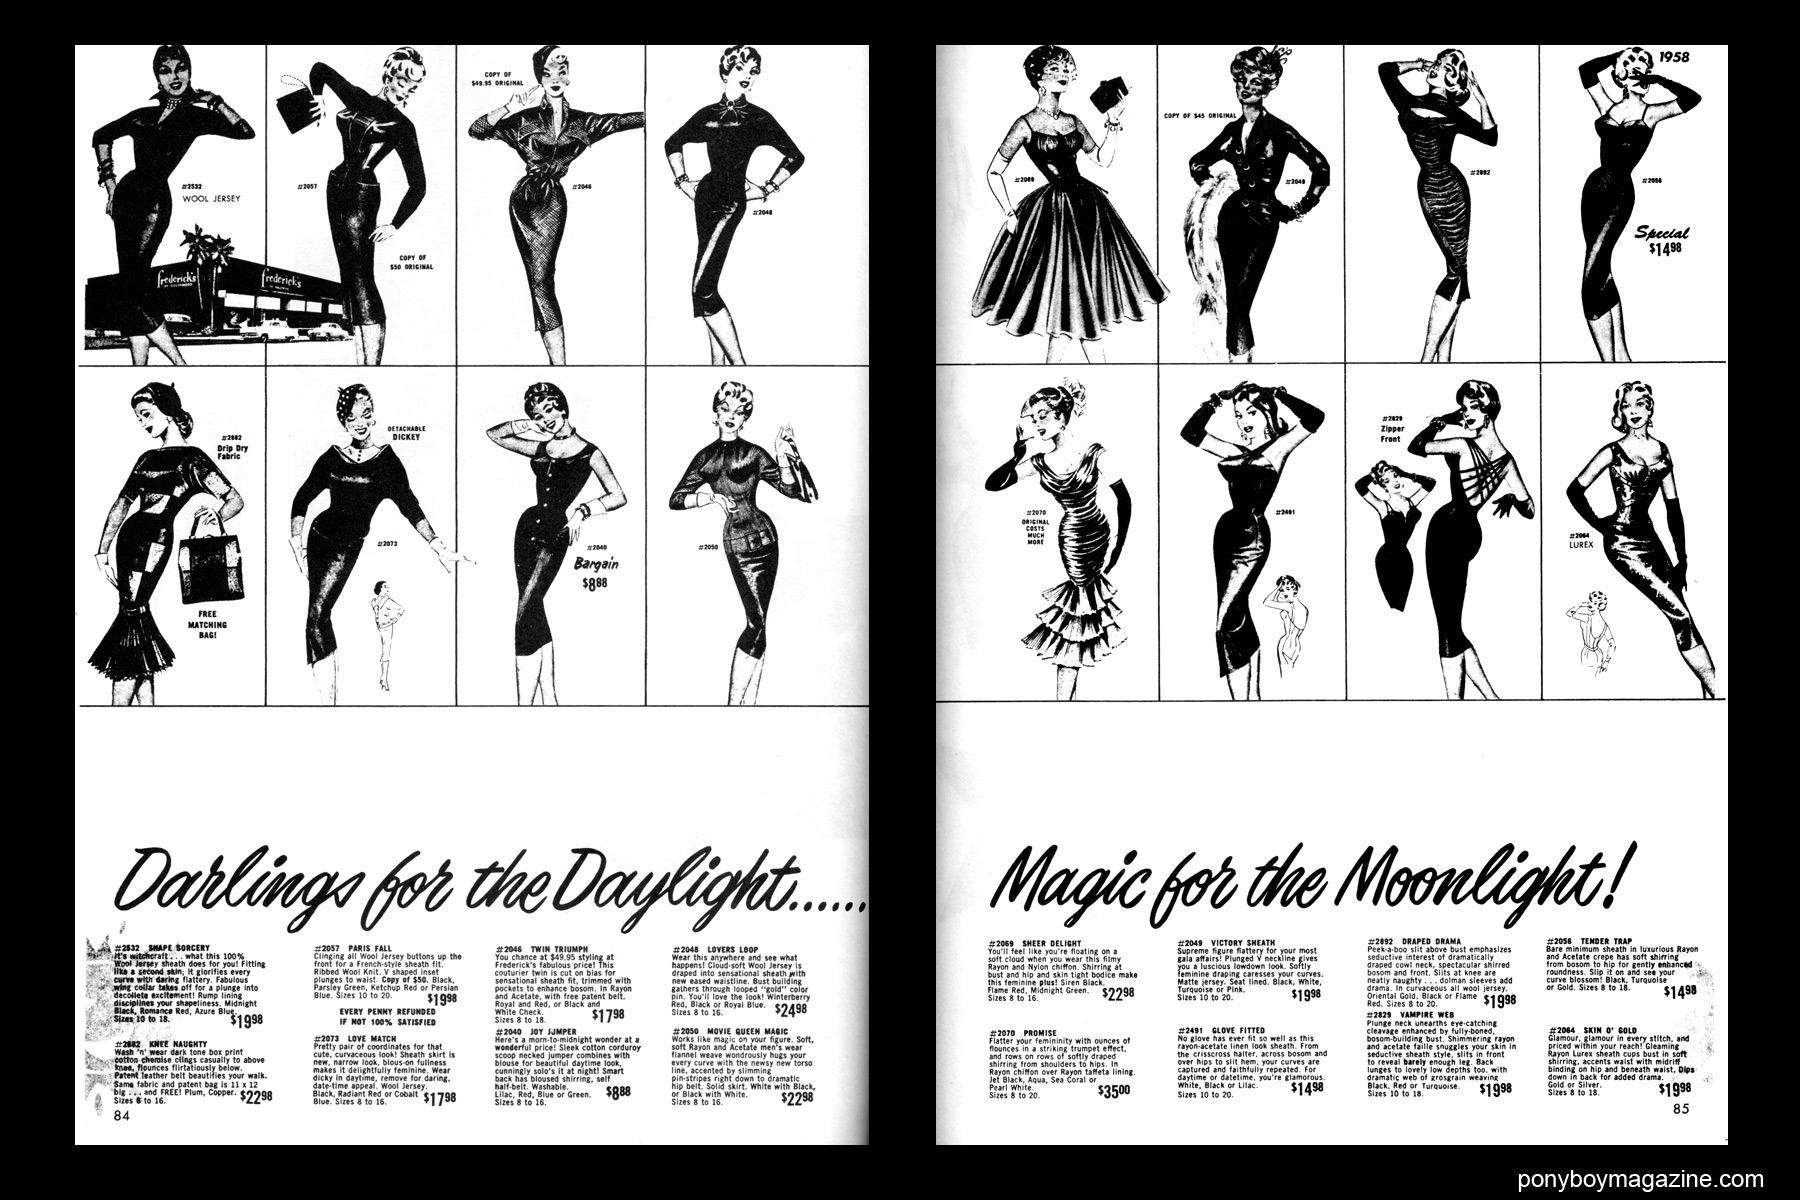 1950's vintage day and night dress illustrations, FREDERICK'S OF HOLLYWOOD: 26 Years of Mail Order Seduction. Printed in 1973 by Drake Publishers. Edited by Laura & Janusz Gottwald, Ponyboy Magazine from New York City.